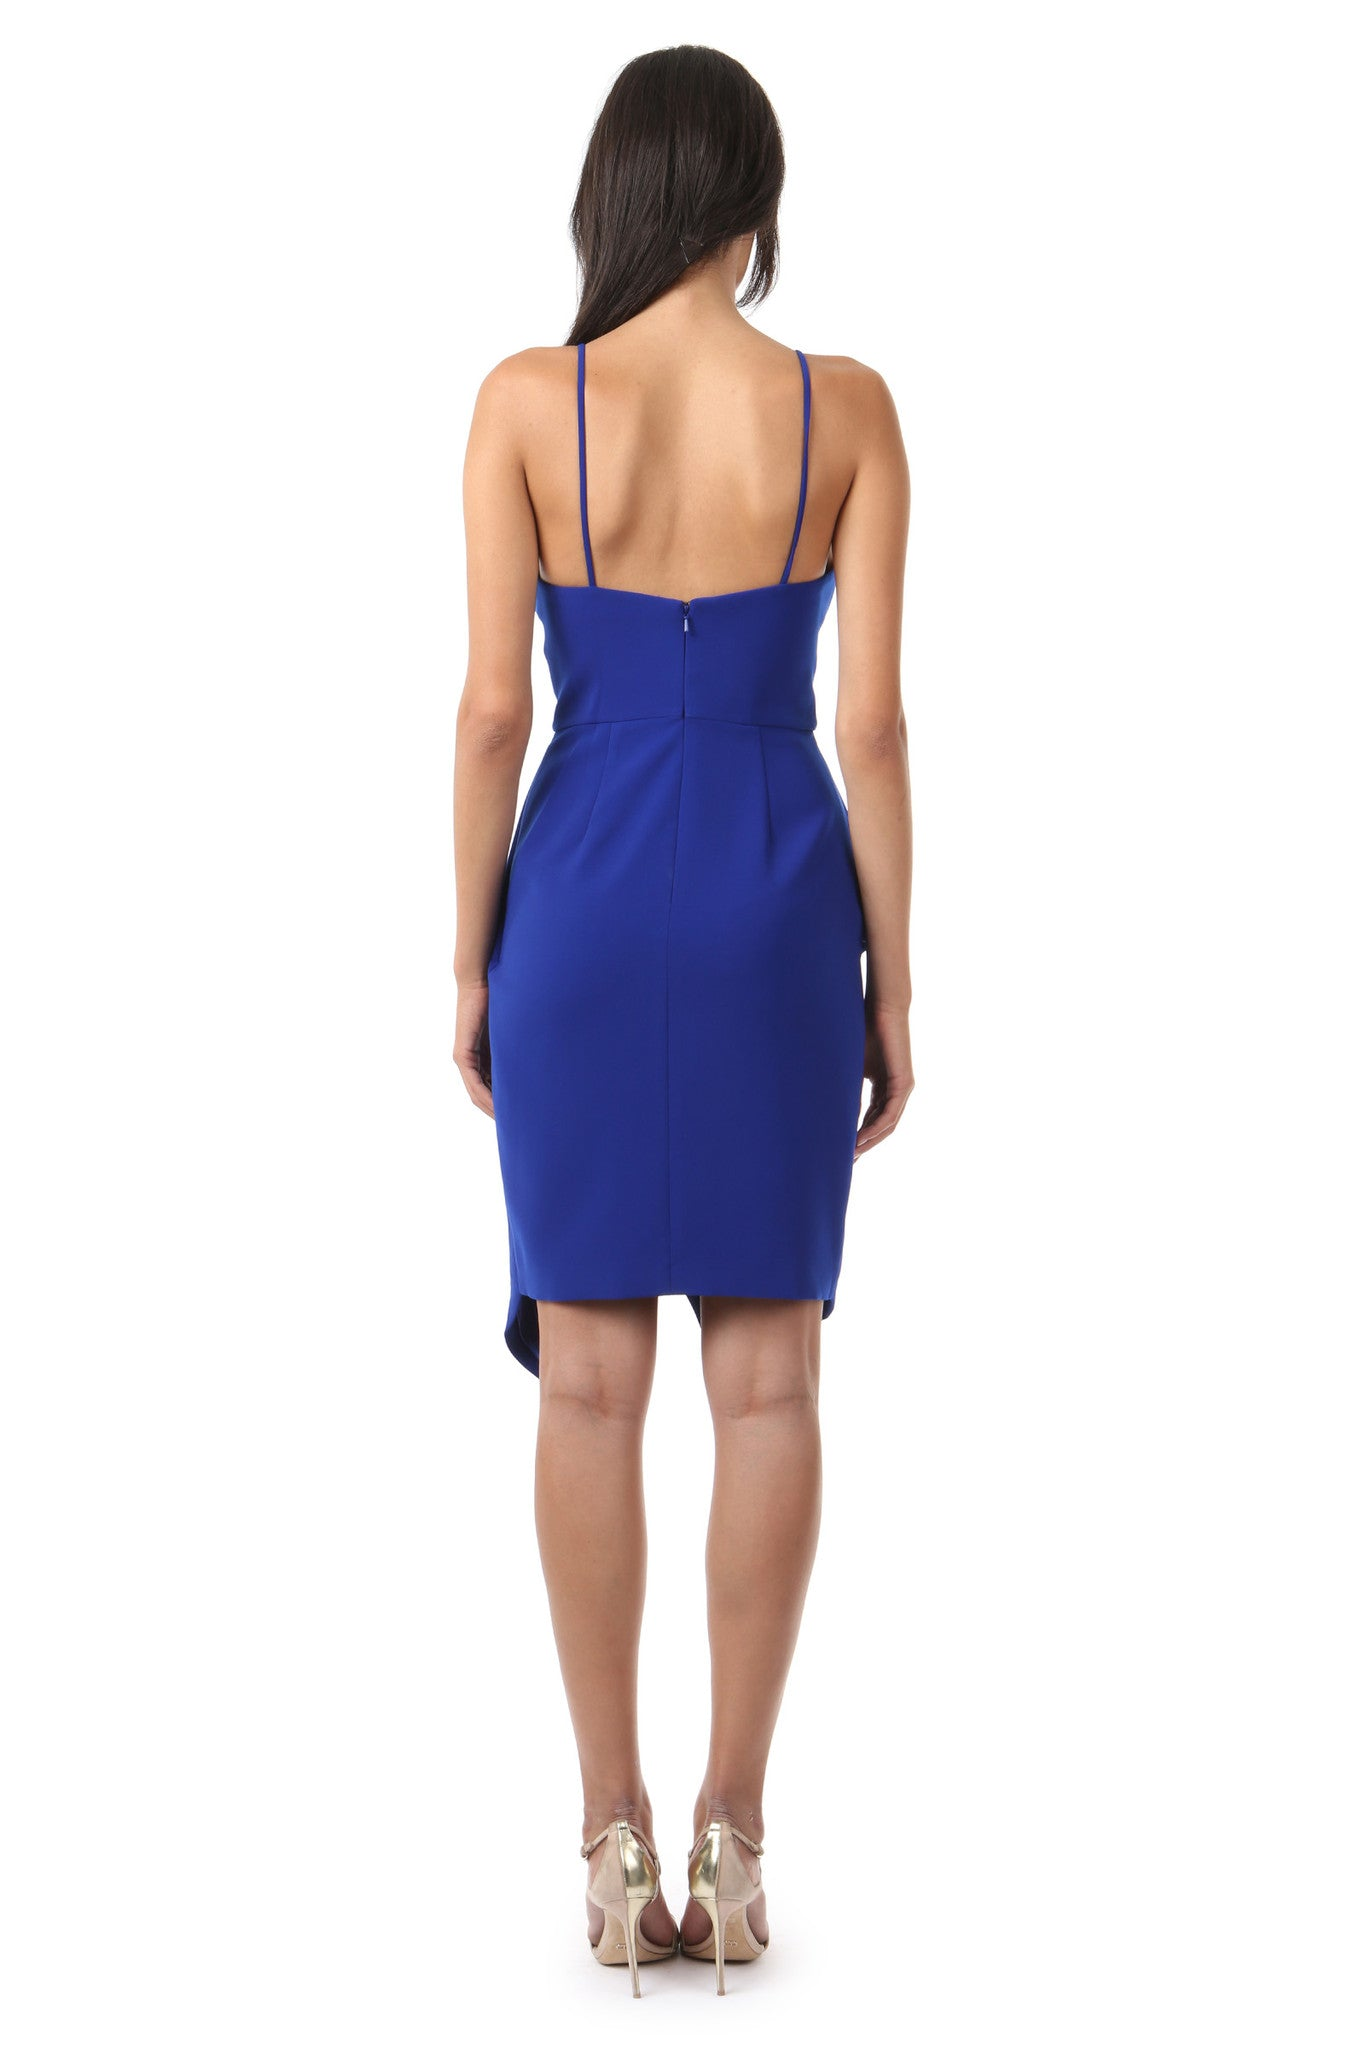 Jay Godfrey Cobalt Ruffle Tank Top Dress - Back View